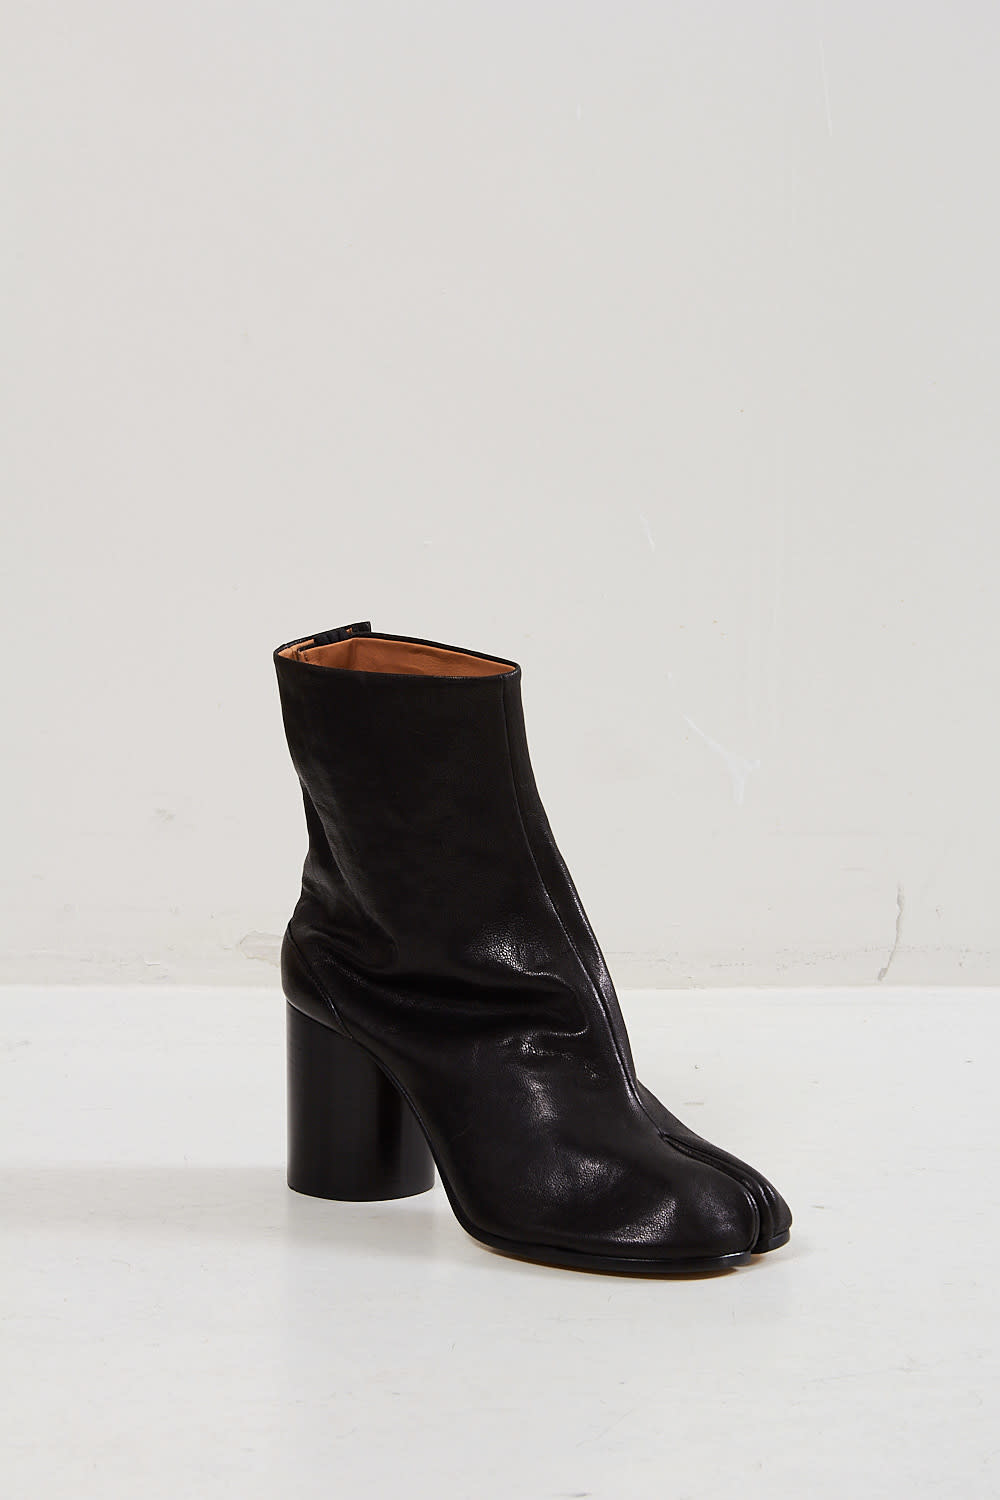 Maison Margiela Ankle boot MM